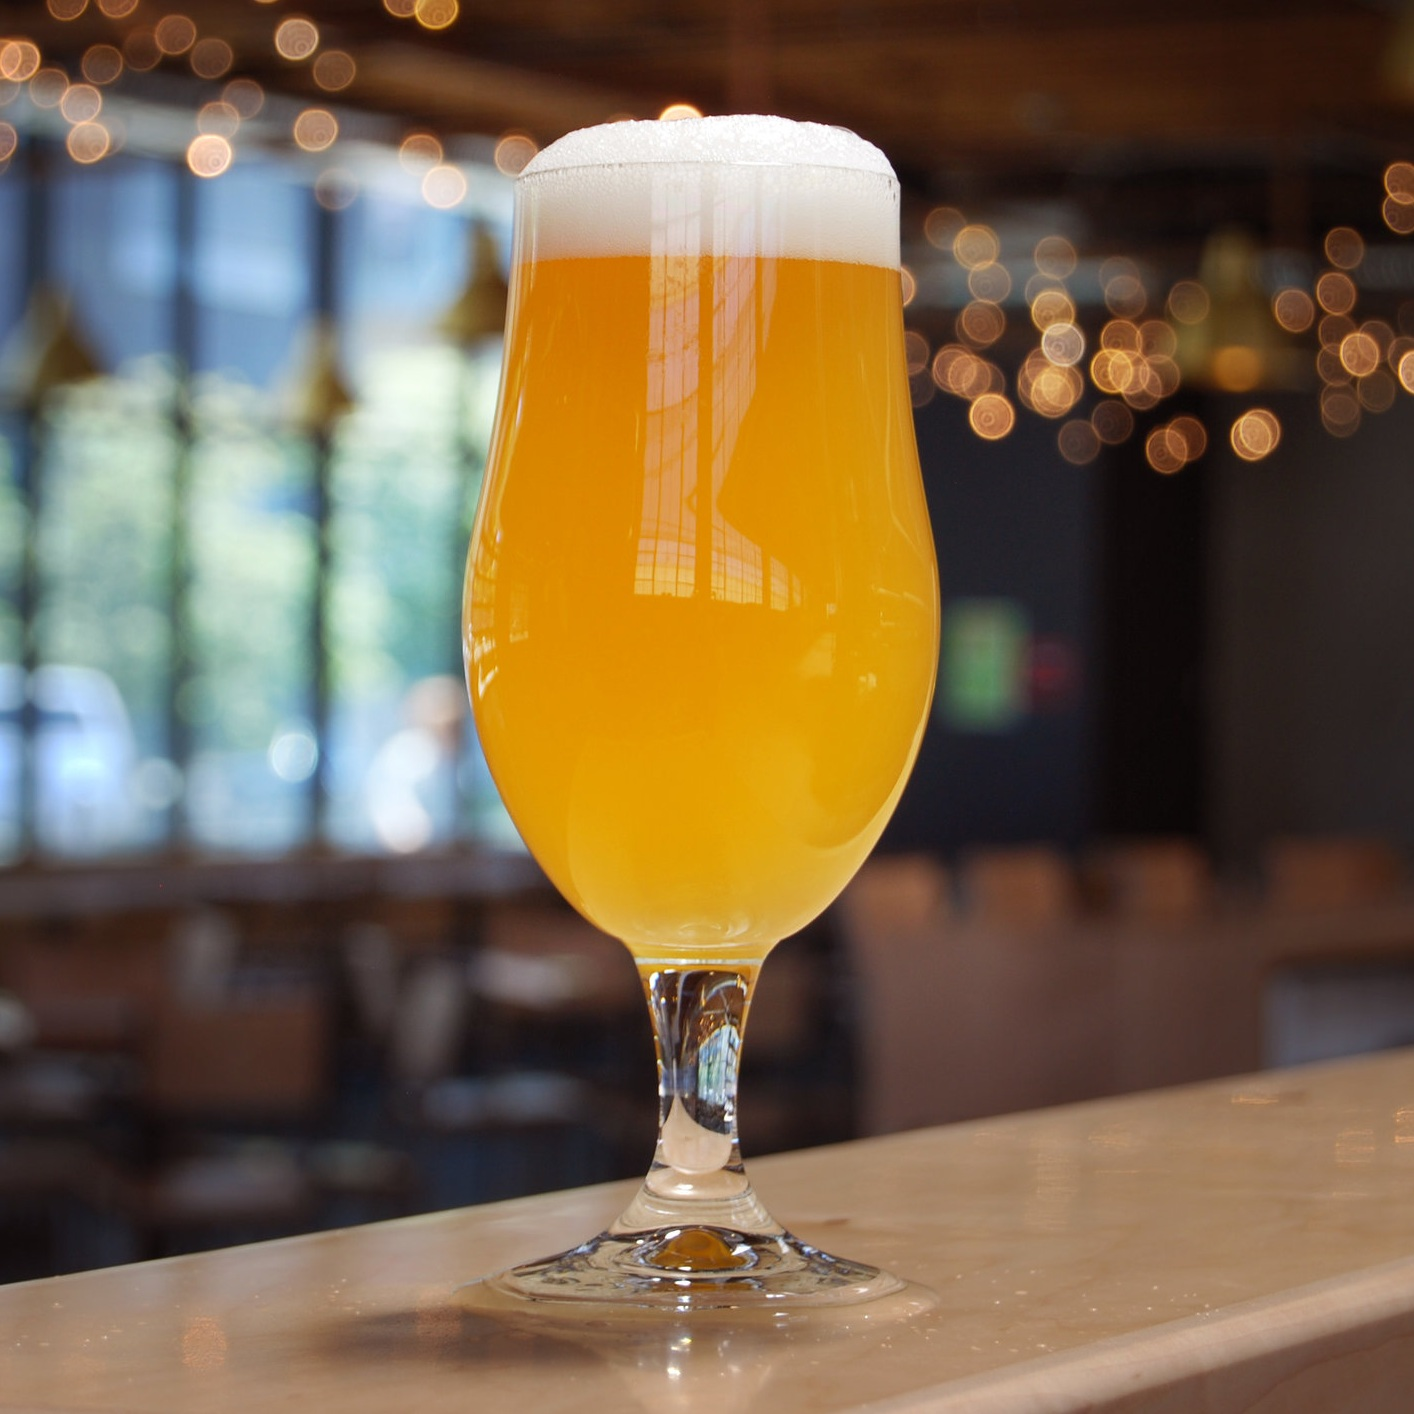 Glass of Late to the Party hazy I.P.A.